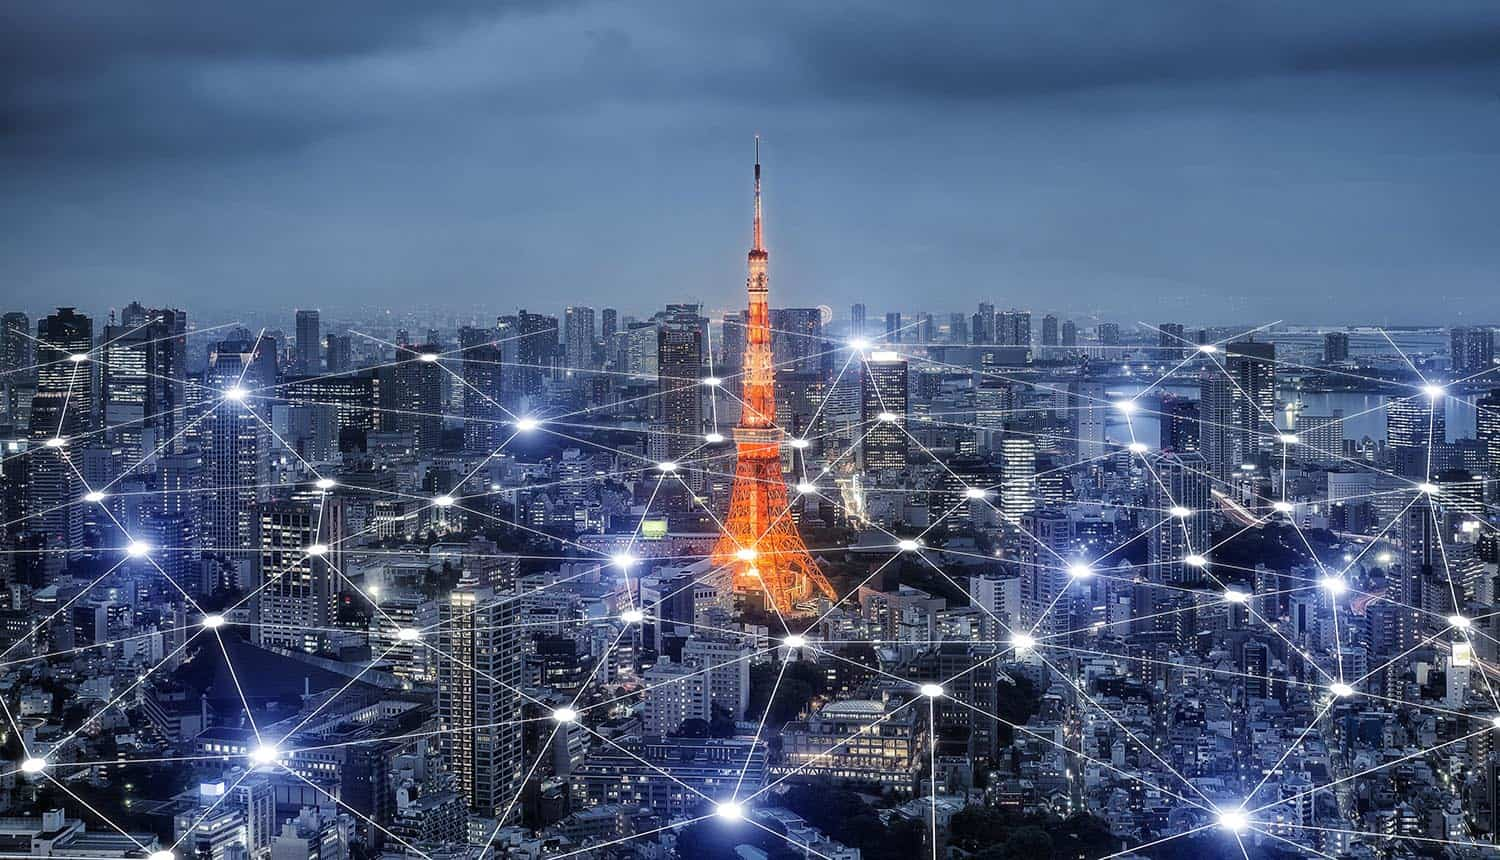 Image of city skyline with overlay of network connections signifying the Internet of Things and the way forward from potential failure to success